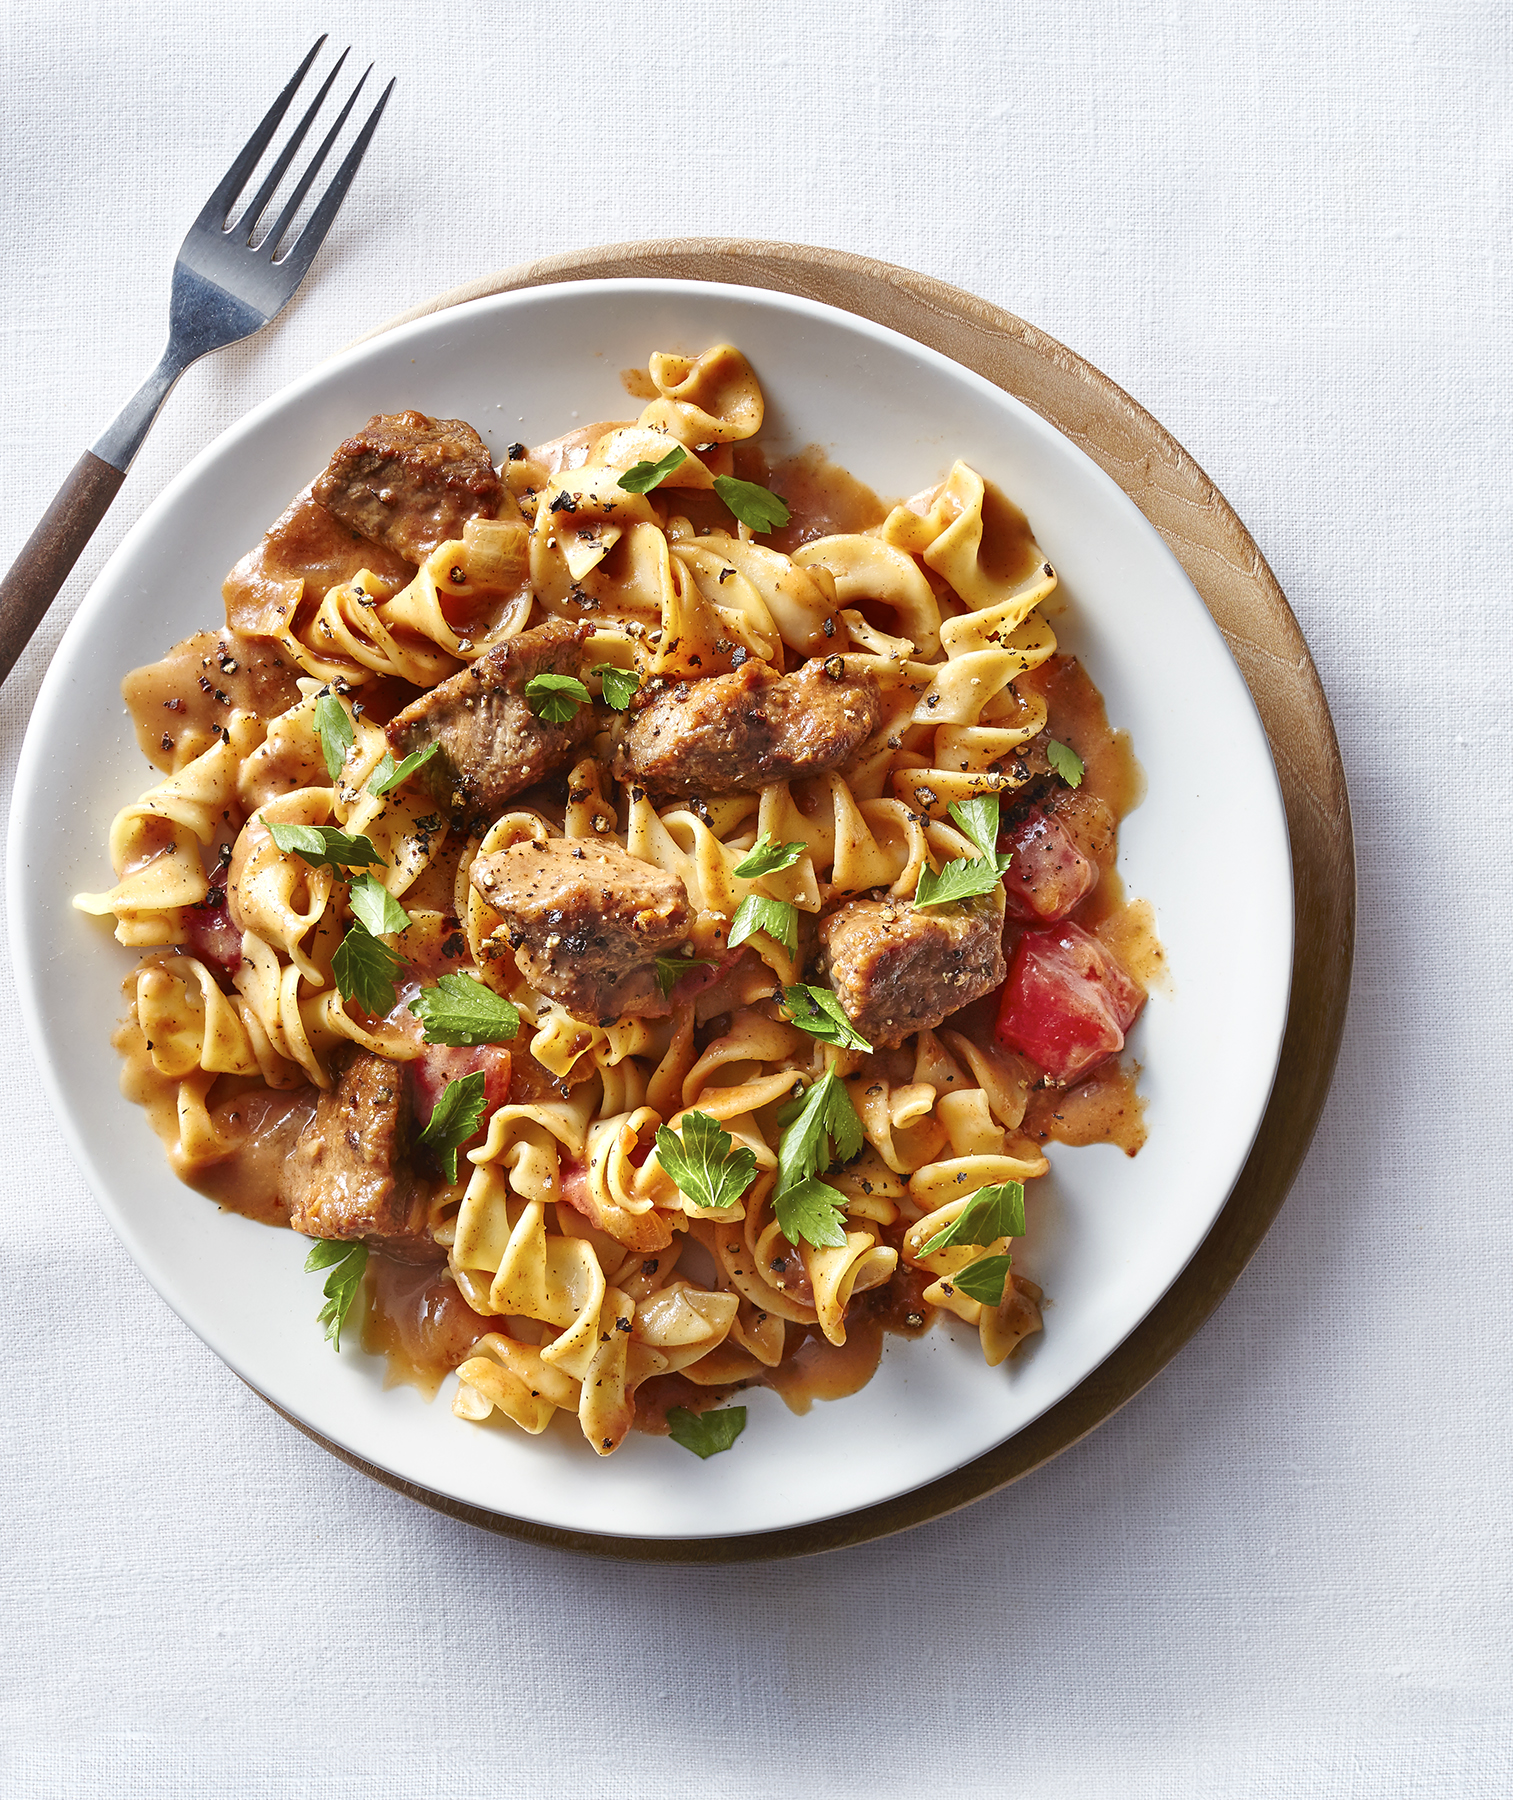 Beef Stroganoff Over Egg Noodles